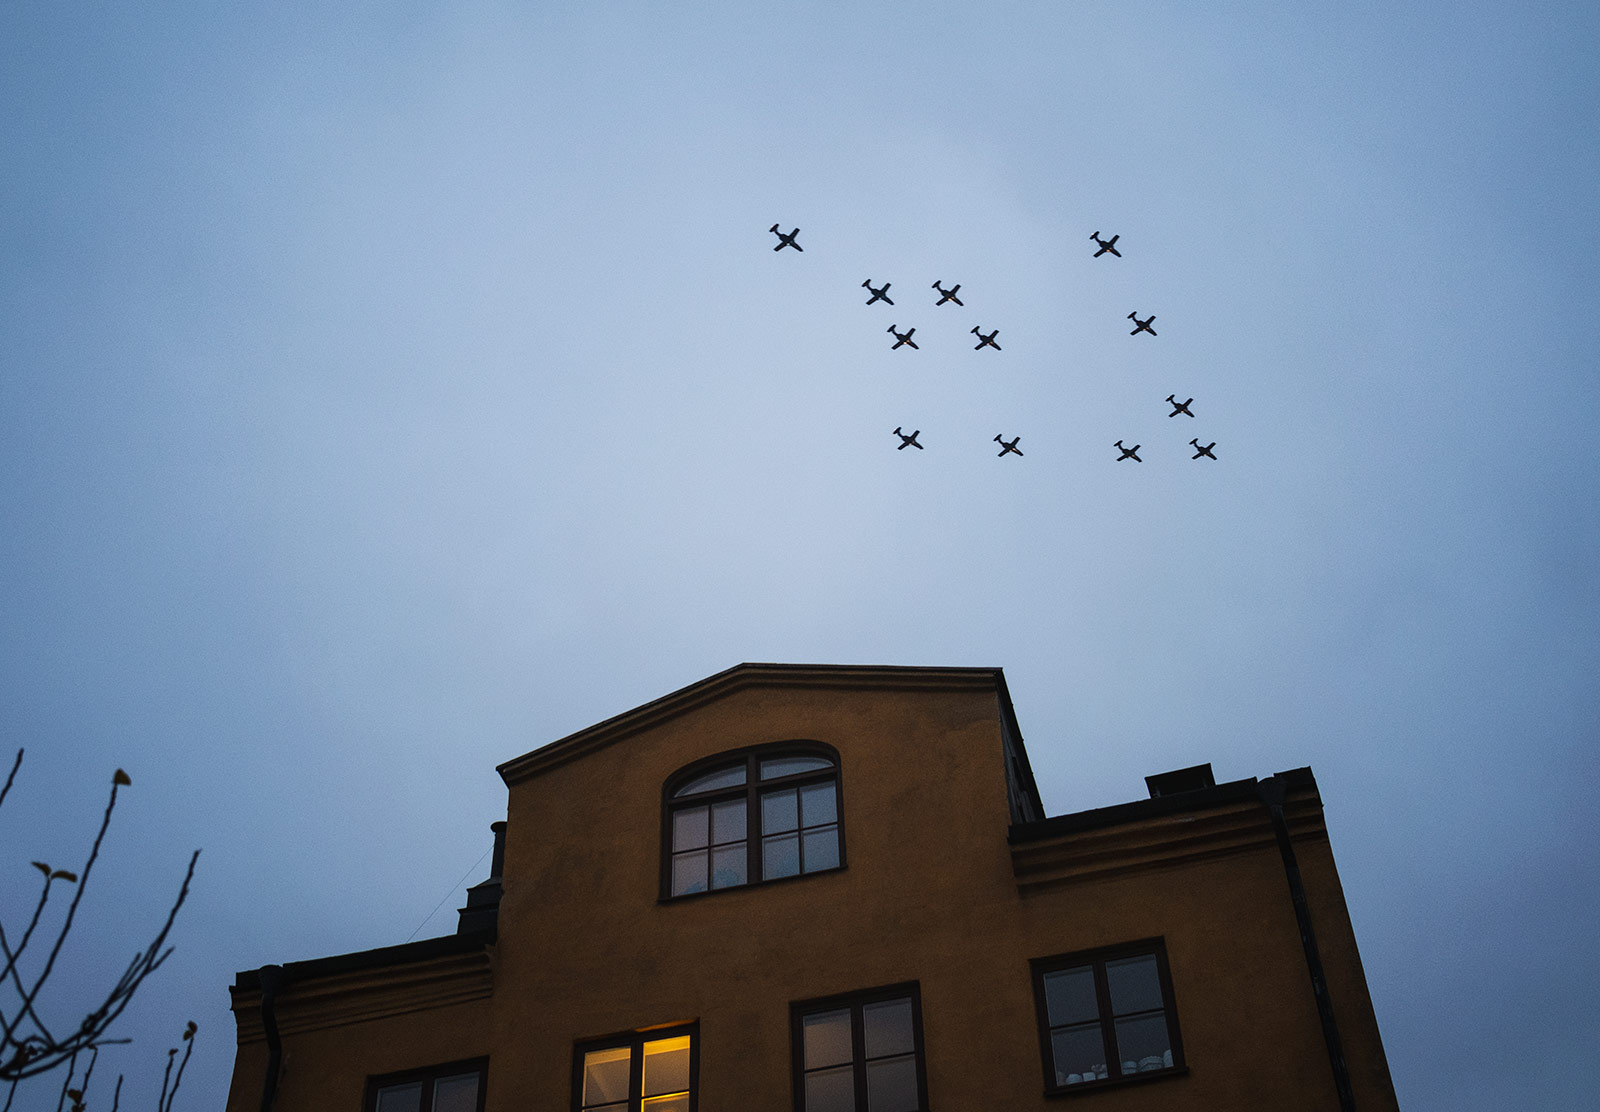 Planes in tree formation